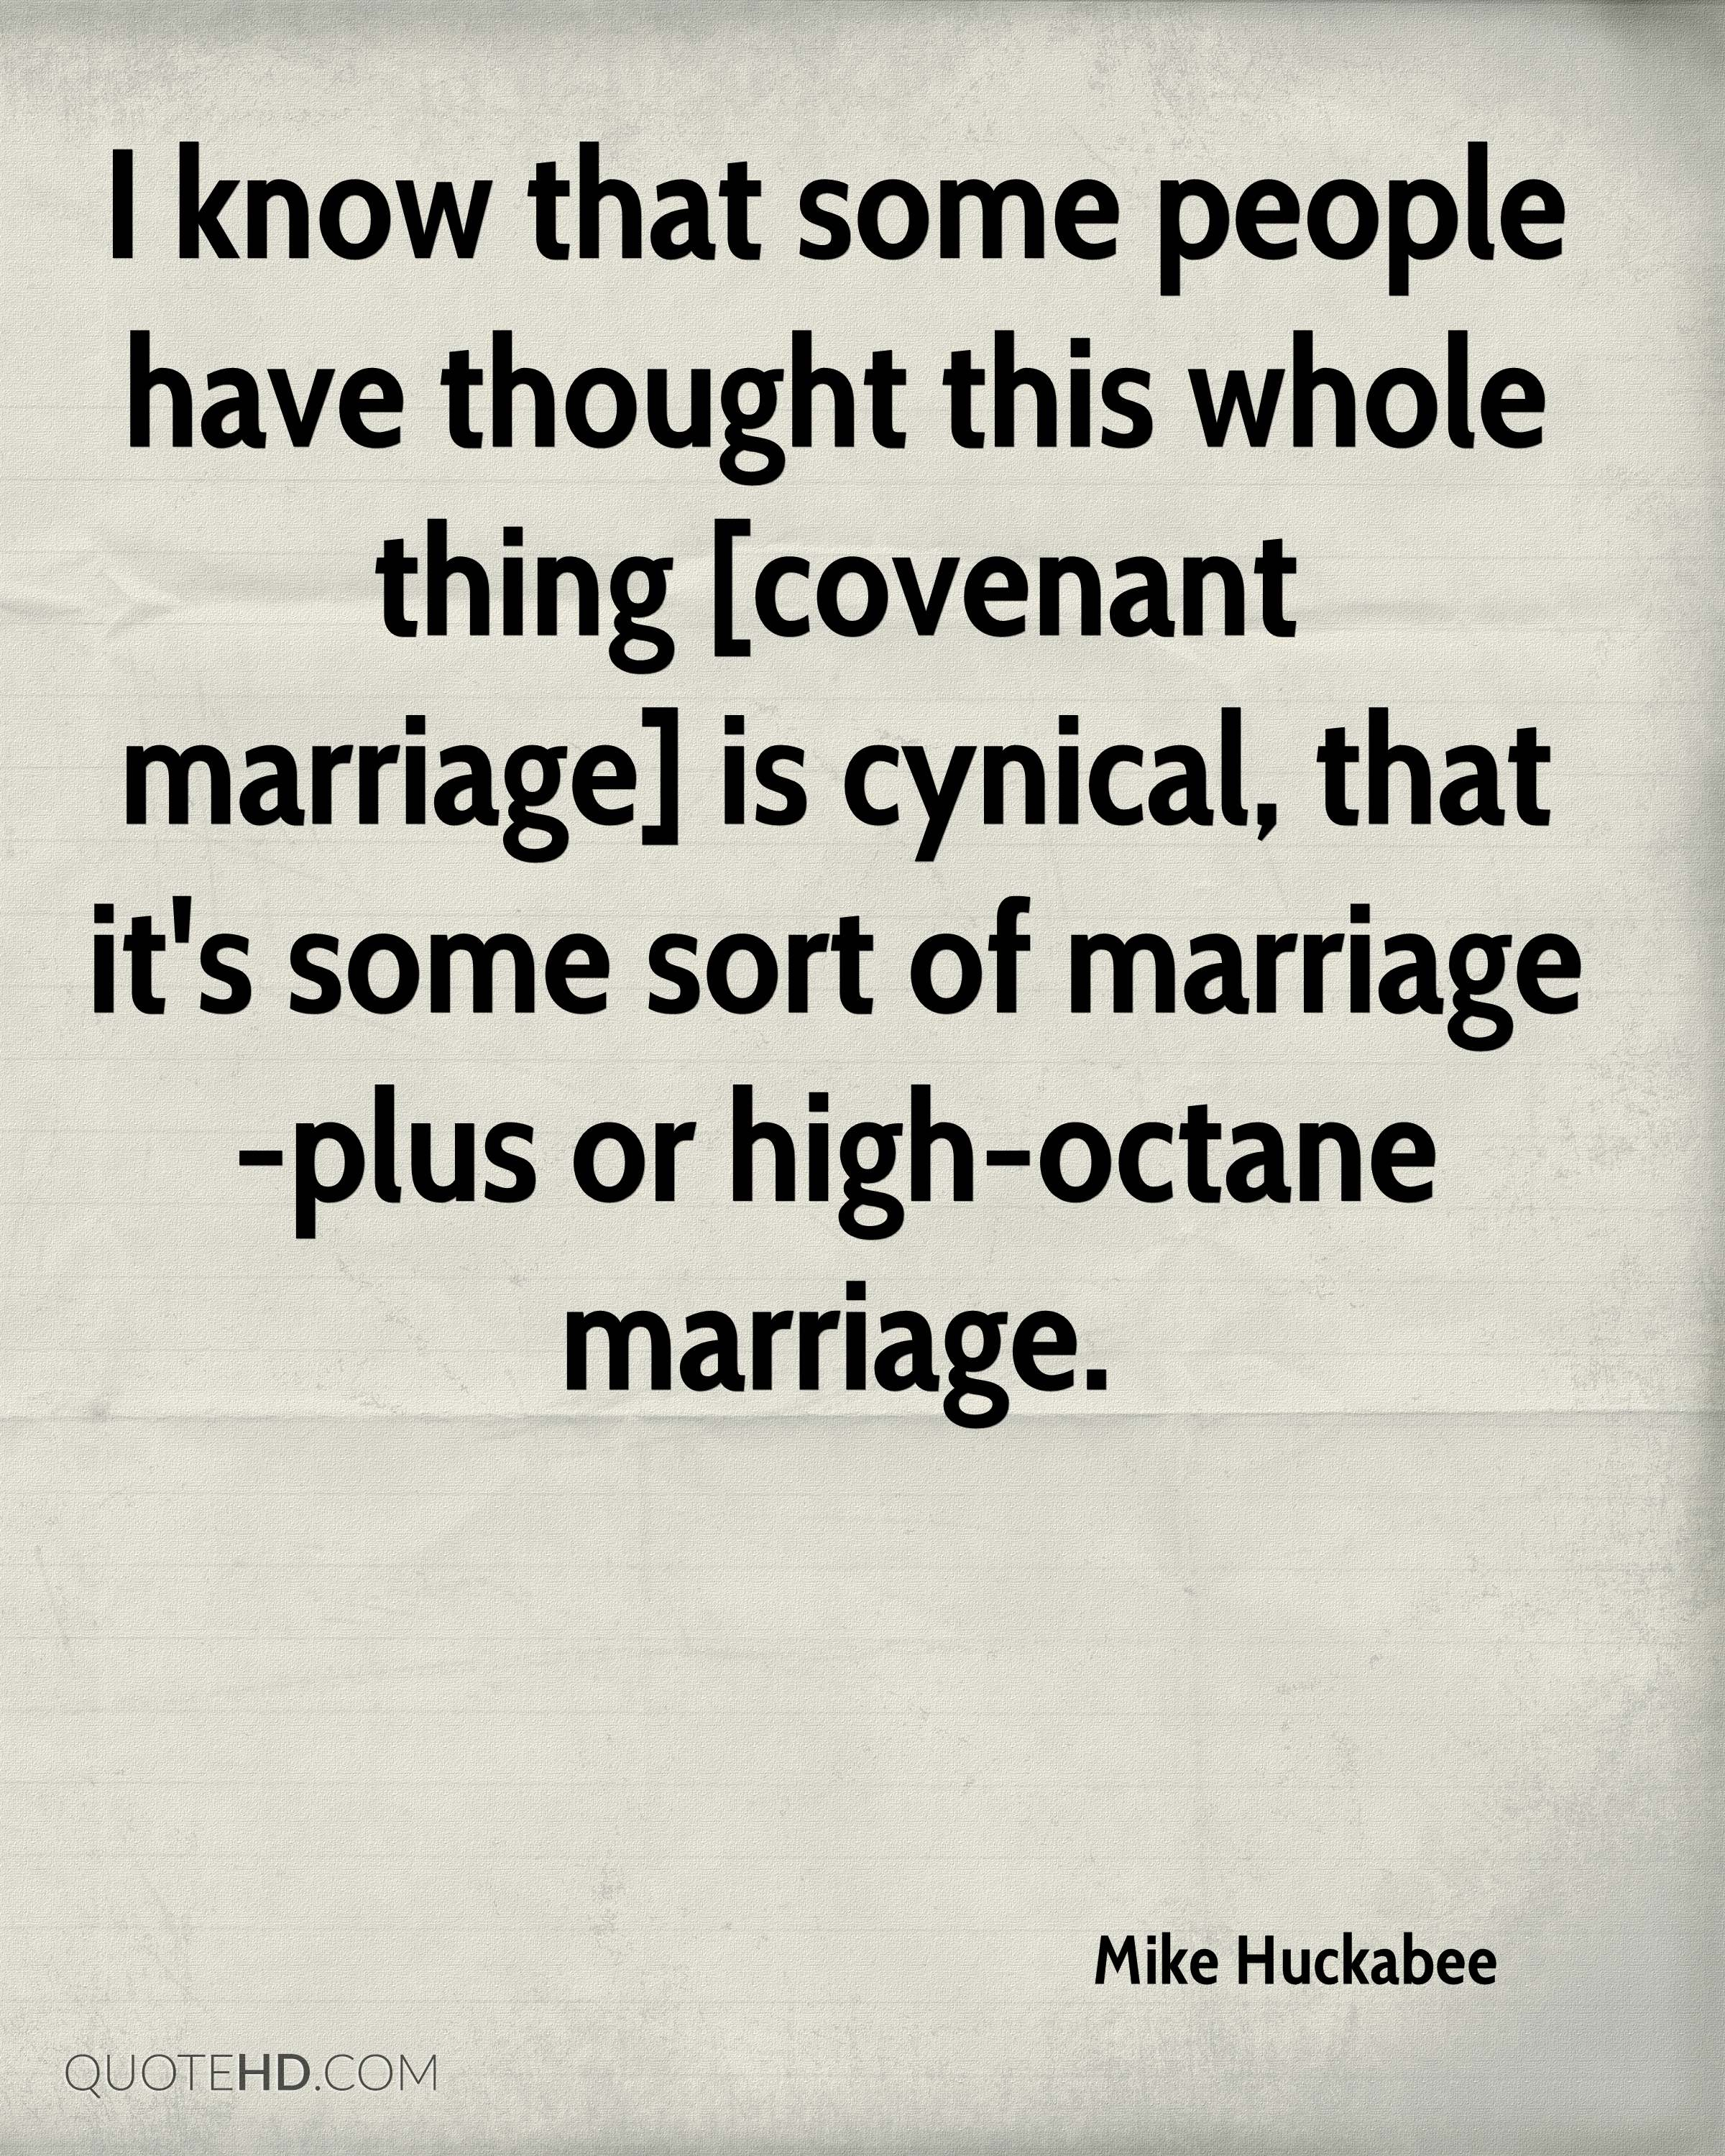 I know that some people have thought this whole thing [covenant marriage] is cynical, that it's some sort of marriage-plus or high-octane marriage.